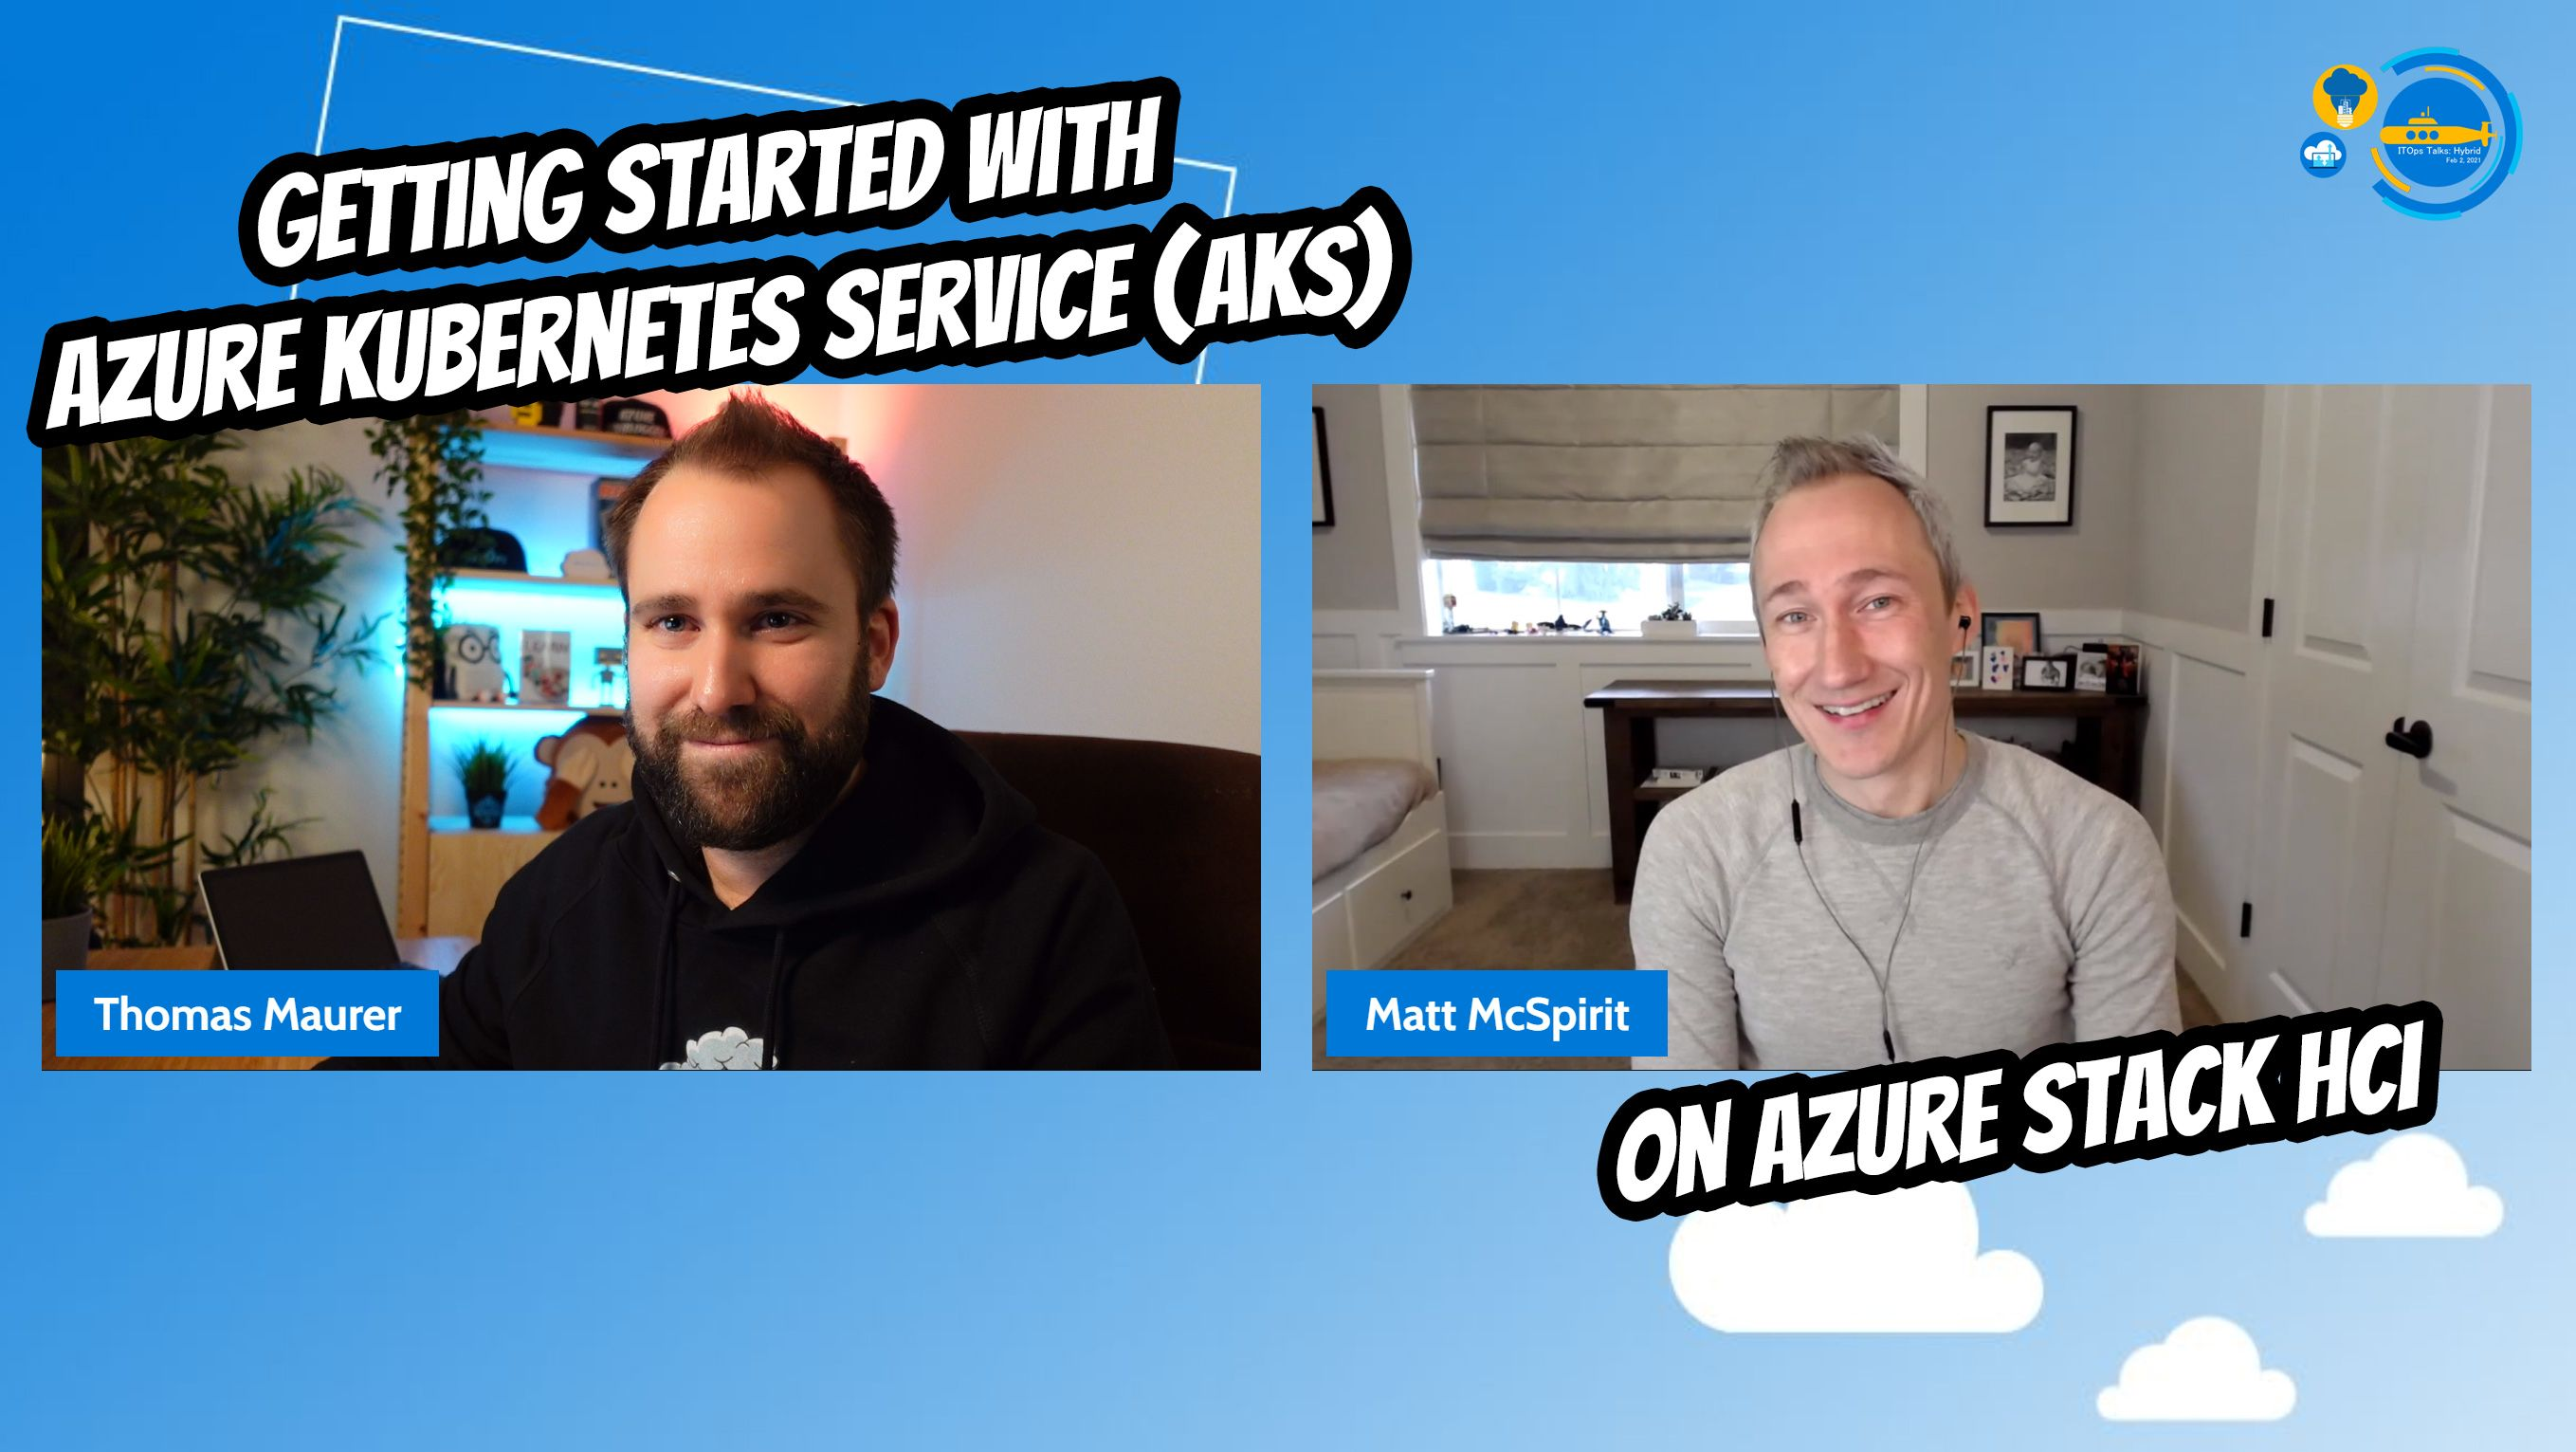 OPS109: Getting started with Azure Kubernetes Service (AKS) on Azure Stack HCI